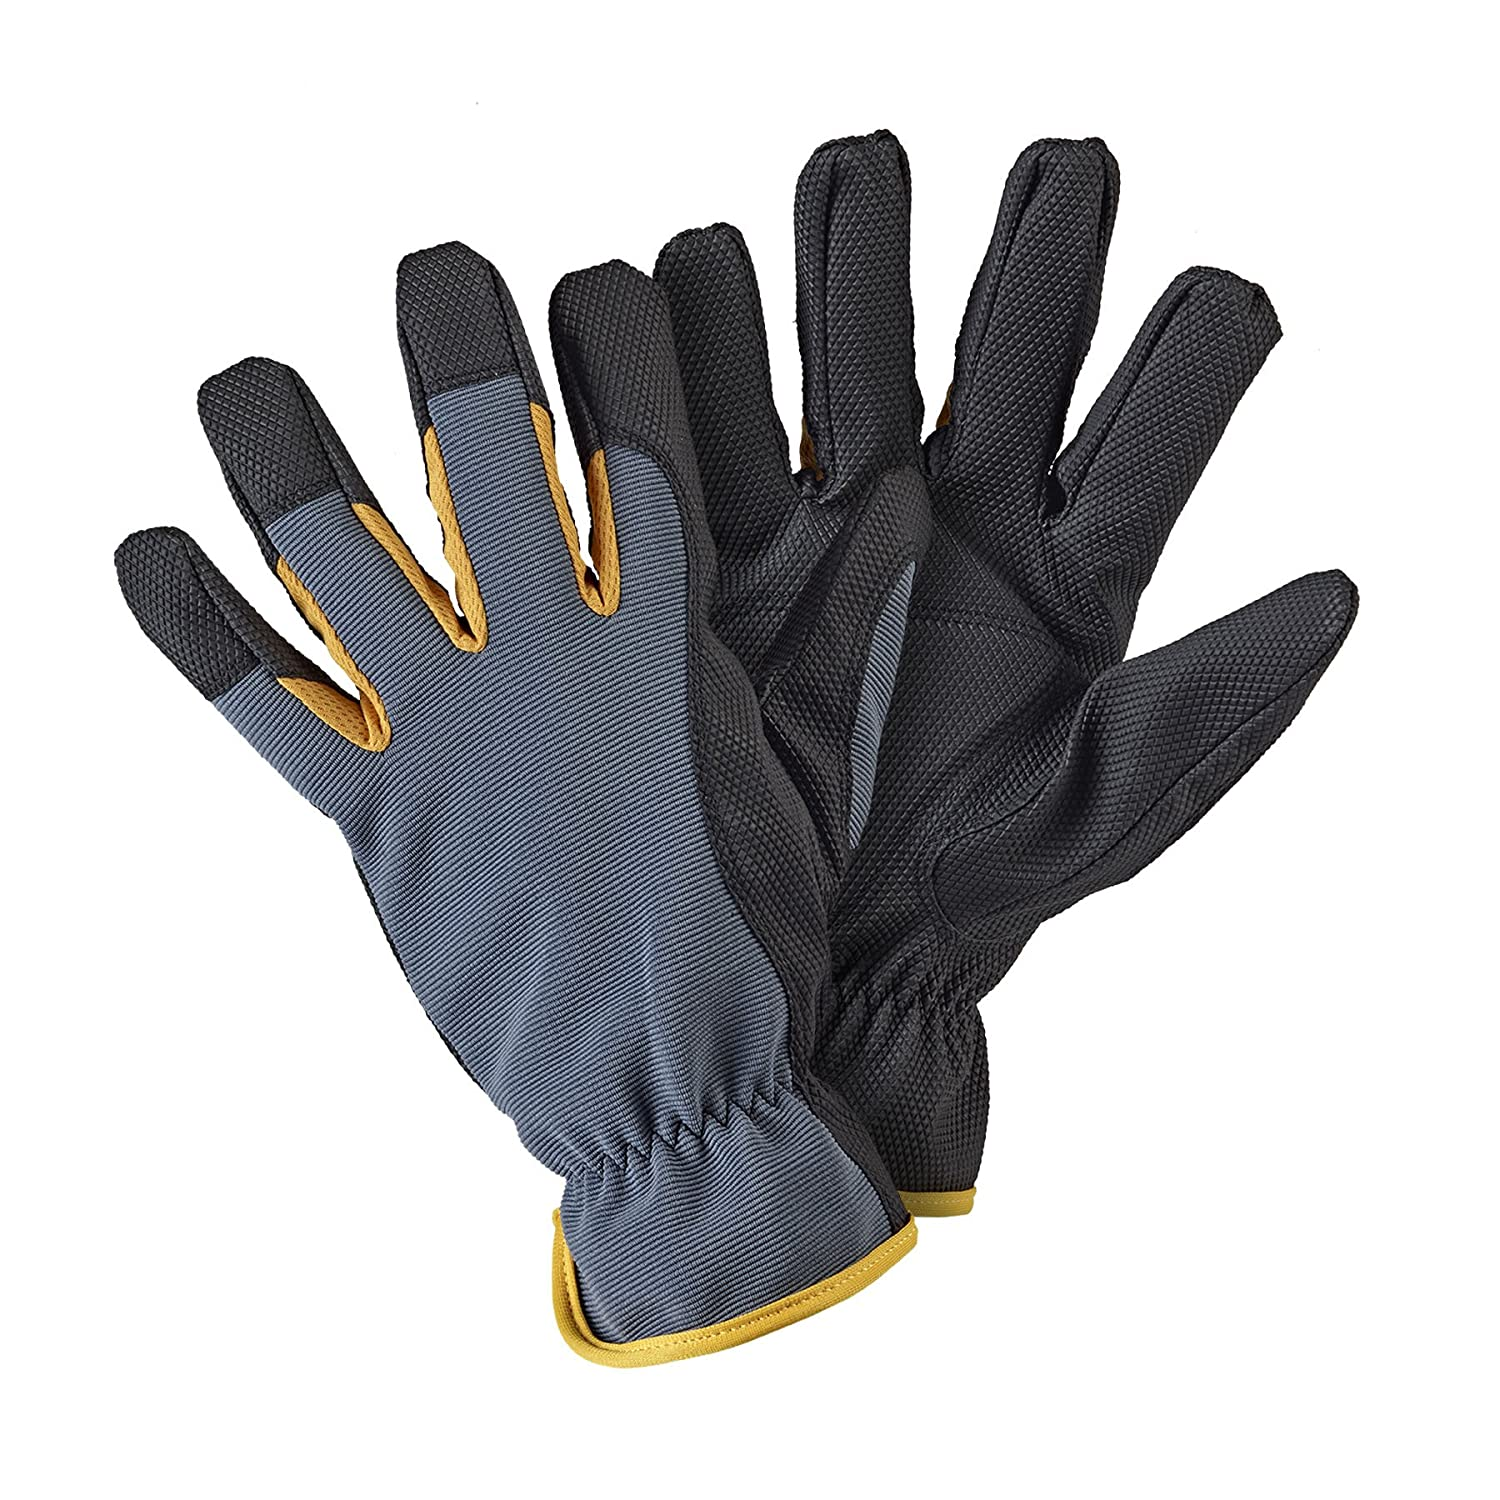 Briers Advanced Cut-Resistant Gloves, Yellow/Black, Large Briers Ltd B6422